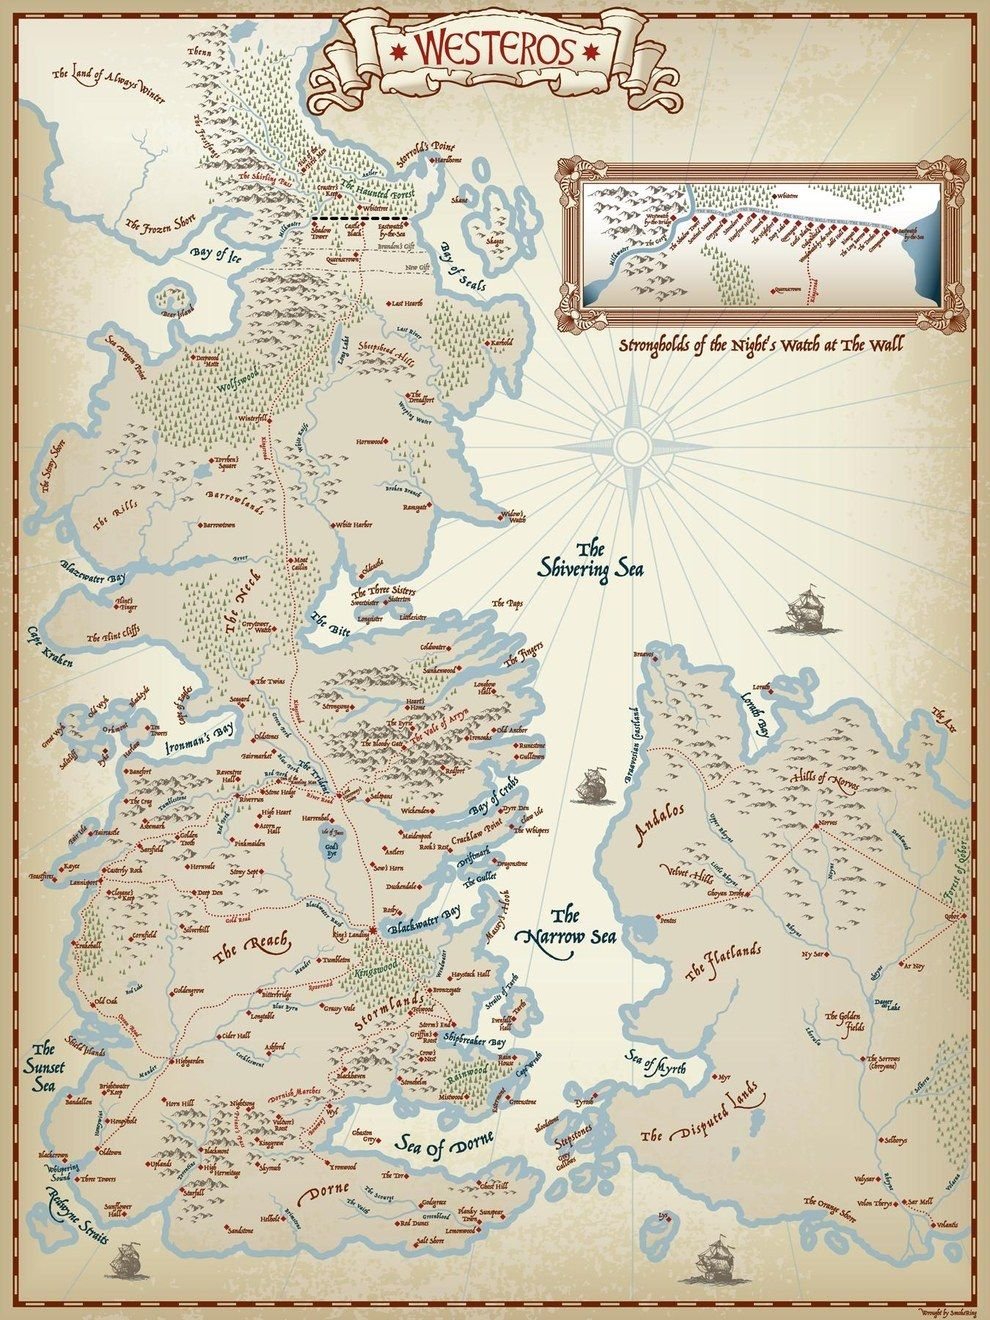 picture about Printable Map of Westeros identify To start with, this extremely fresh new, and uncomplicated map. Induce Im a nerd